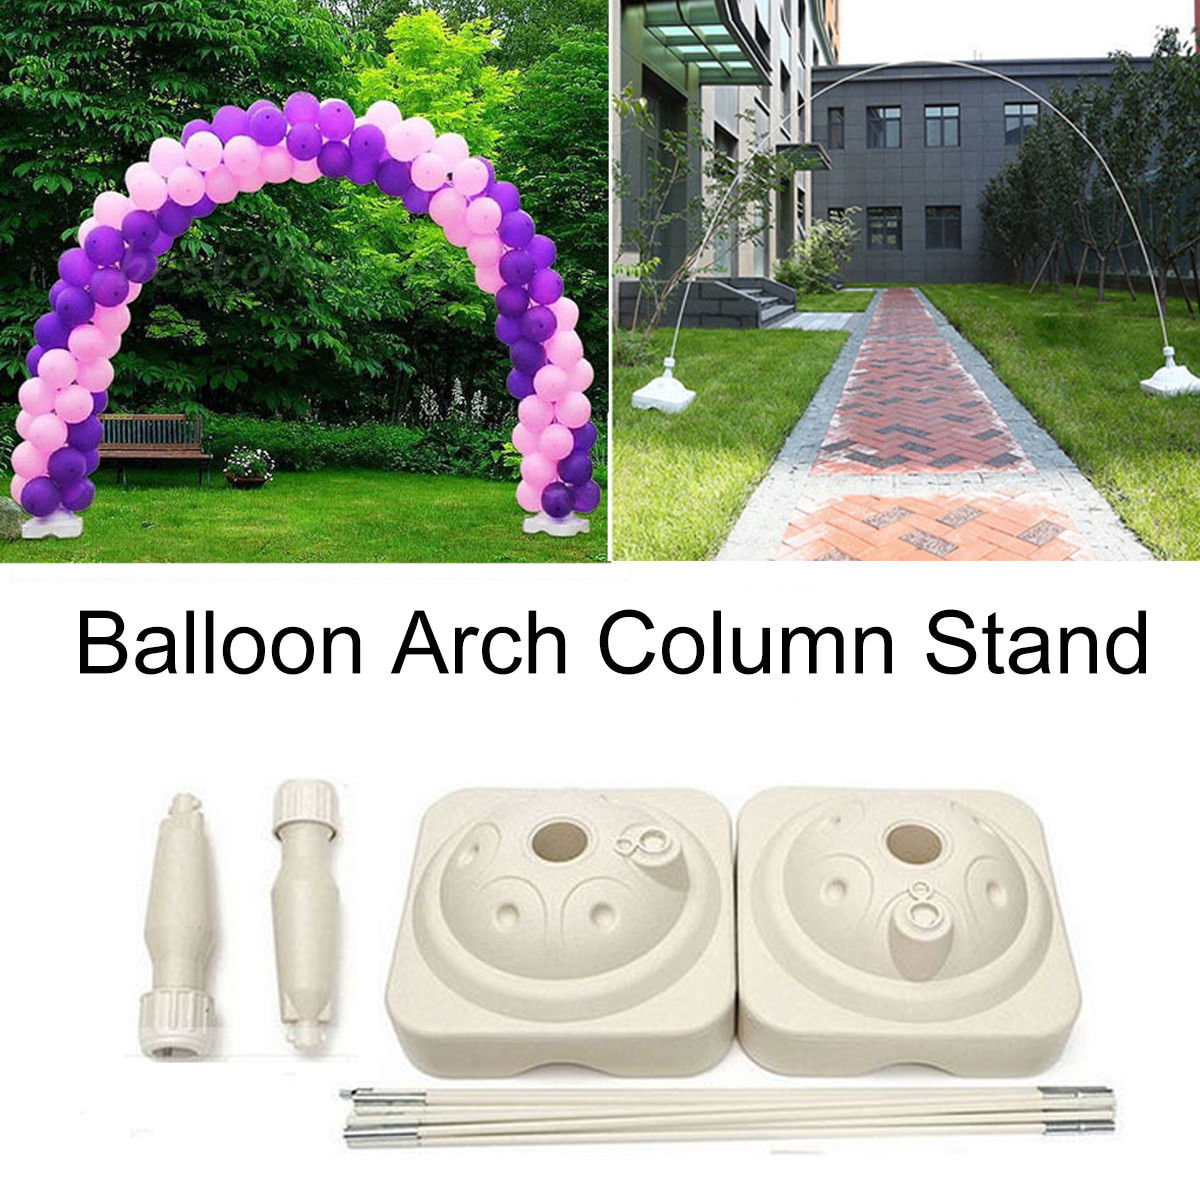 Wedding&Party Celebration Decoration Party Supplies Balloon Arch Stand Base Pot Kit Clip Connector Birthday Balloons AccessoriesWedding&Party Celebration Decoration Party Supplies Balloon Arch Stand Base Pot Kit Clip Connector Birthday Balloons Accessories